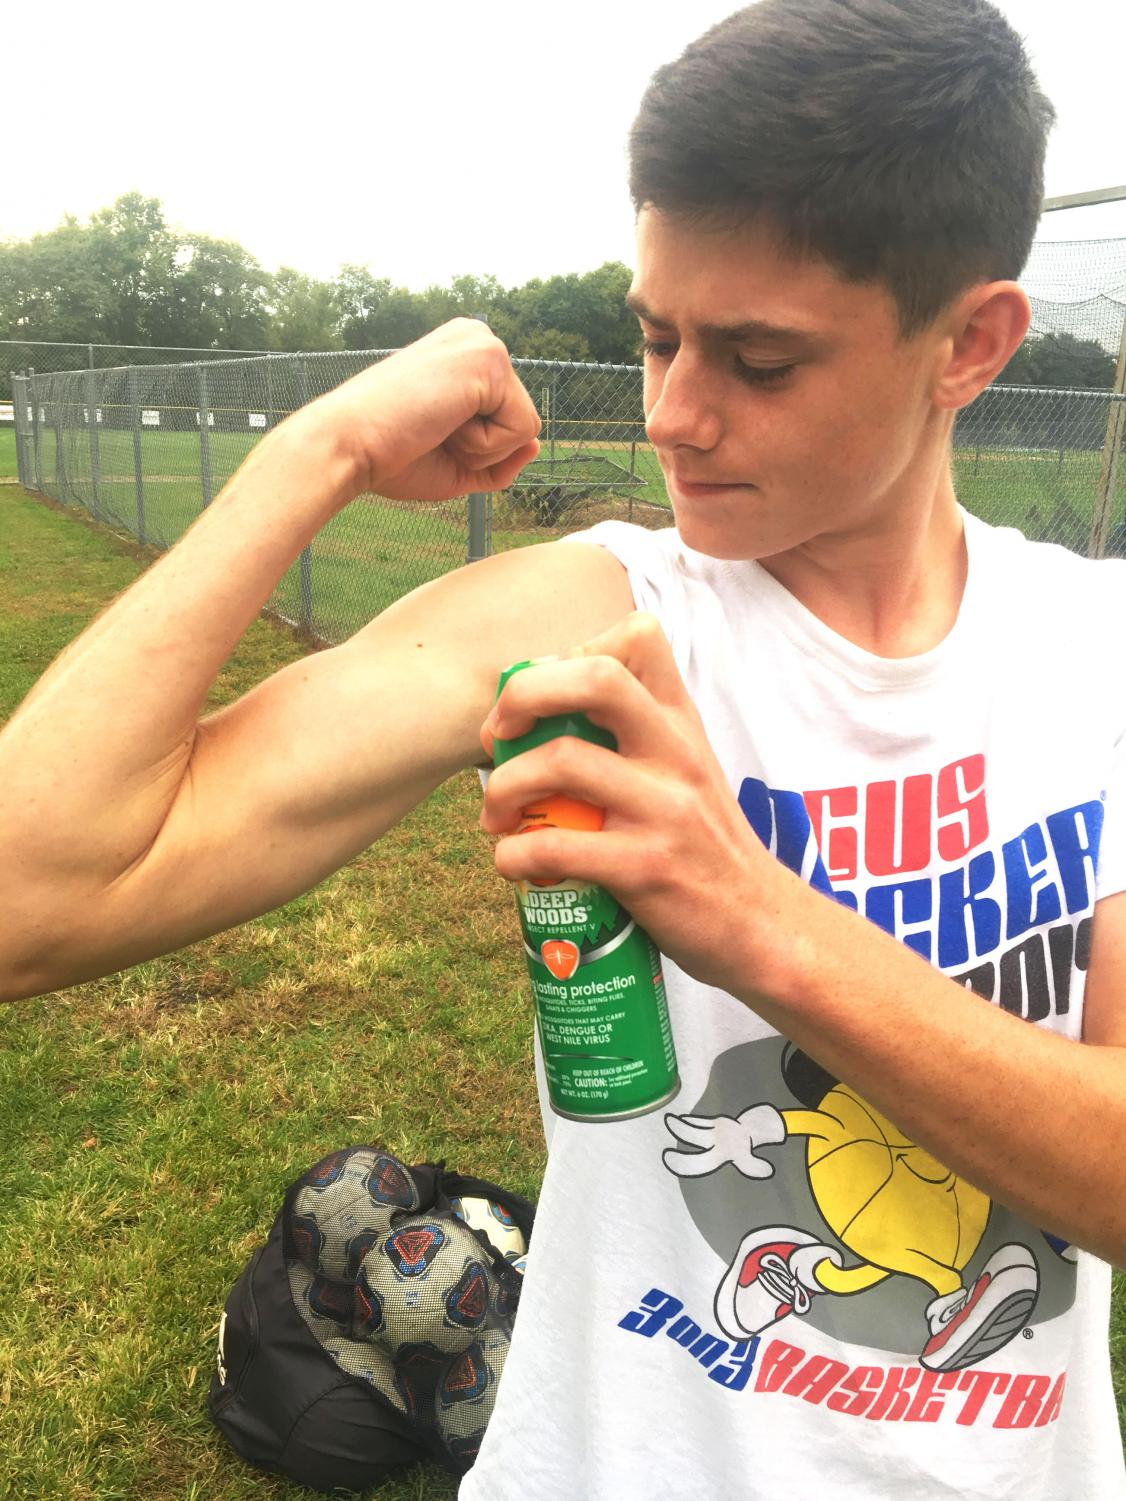 Nathan Faupel '21 sprays bug spray to protect against EEE